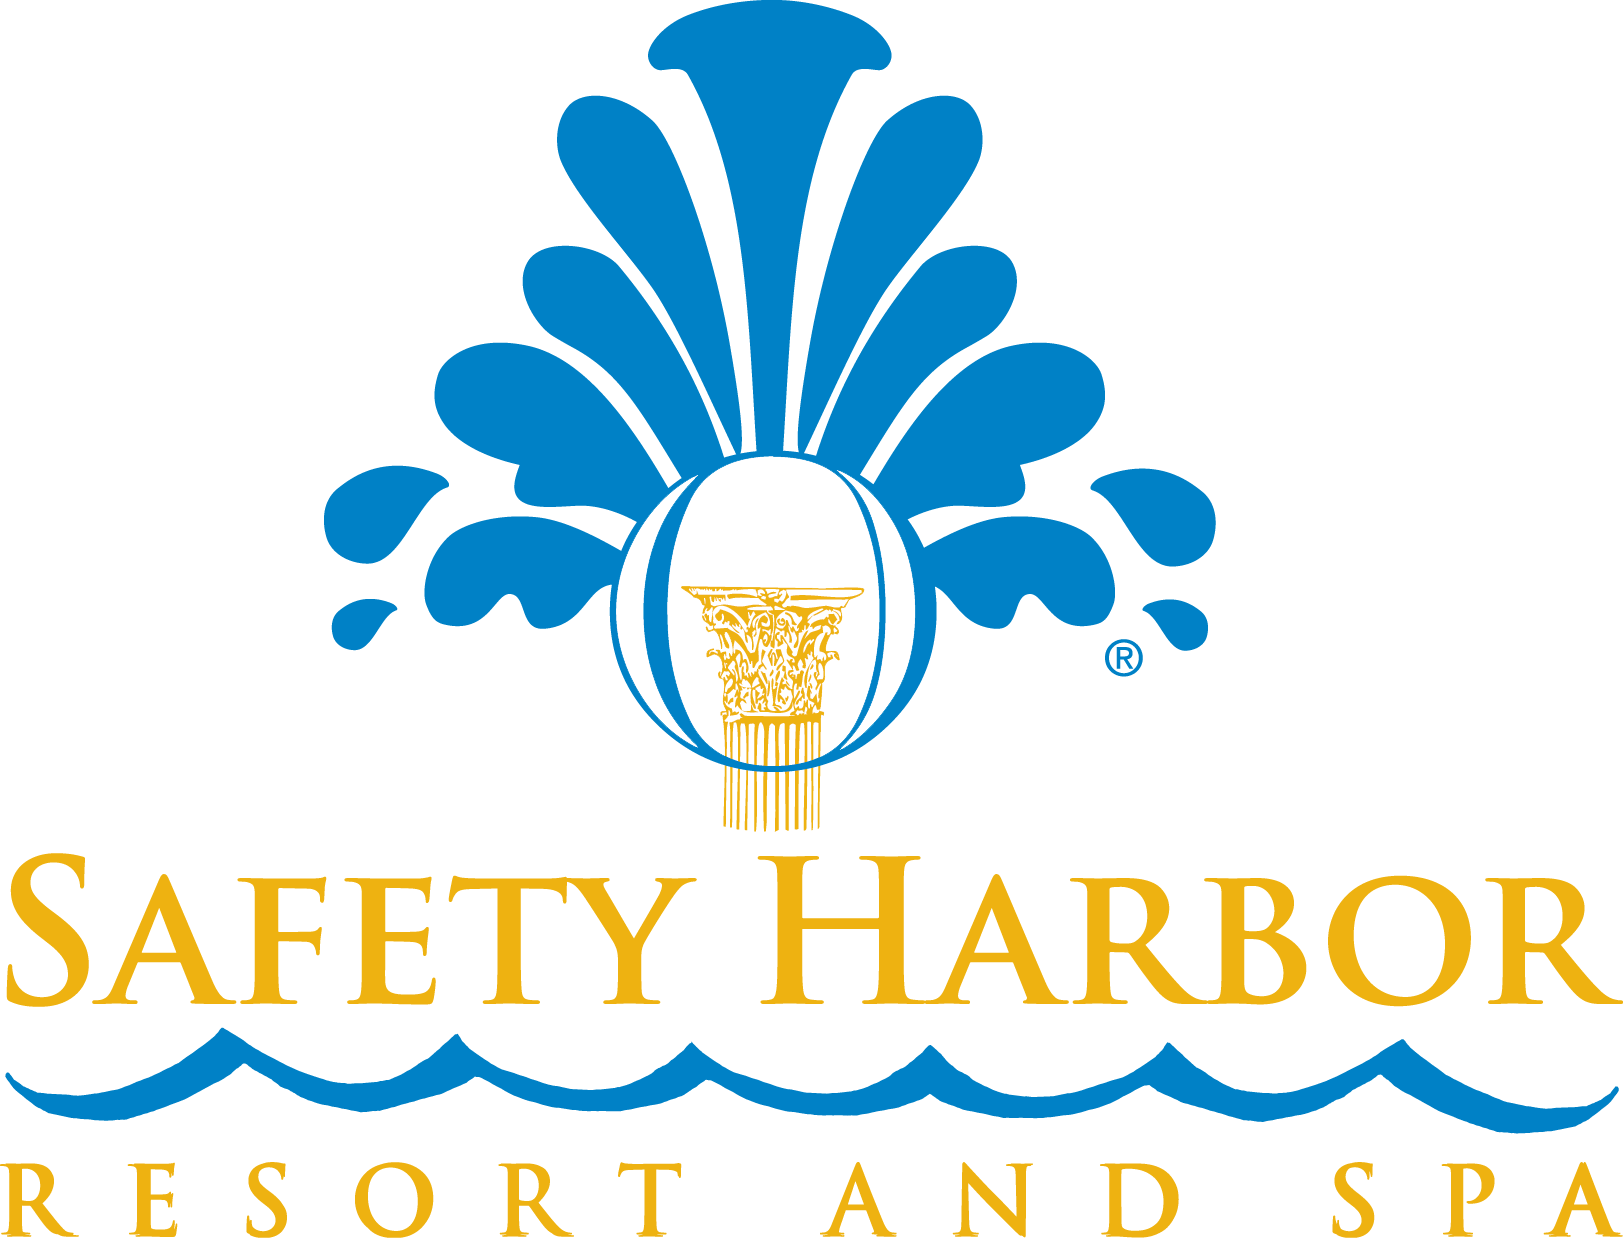 Safety Harbor Resort and Spa